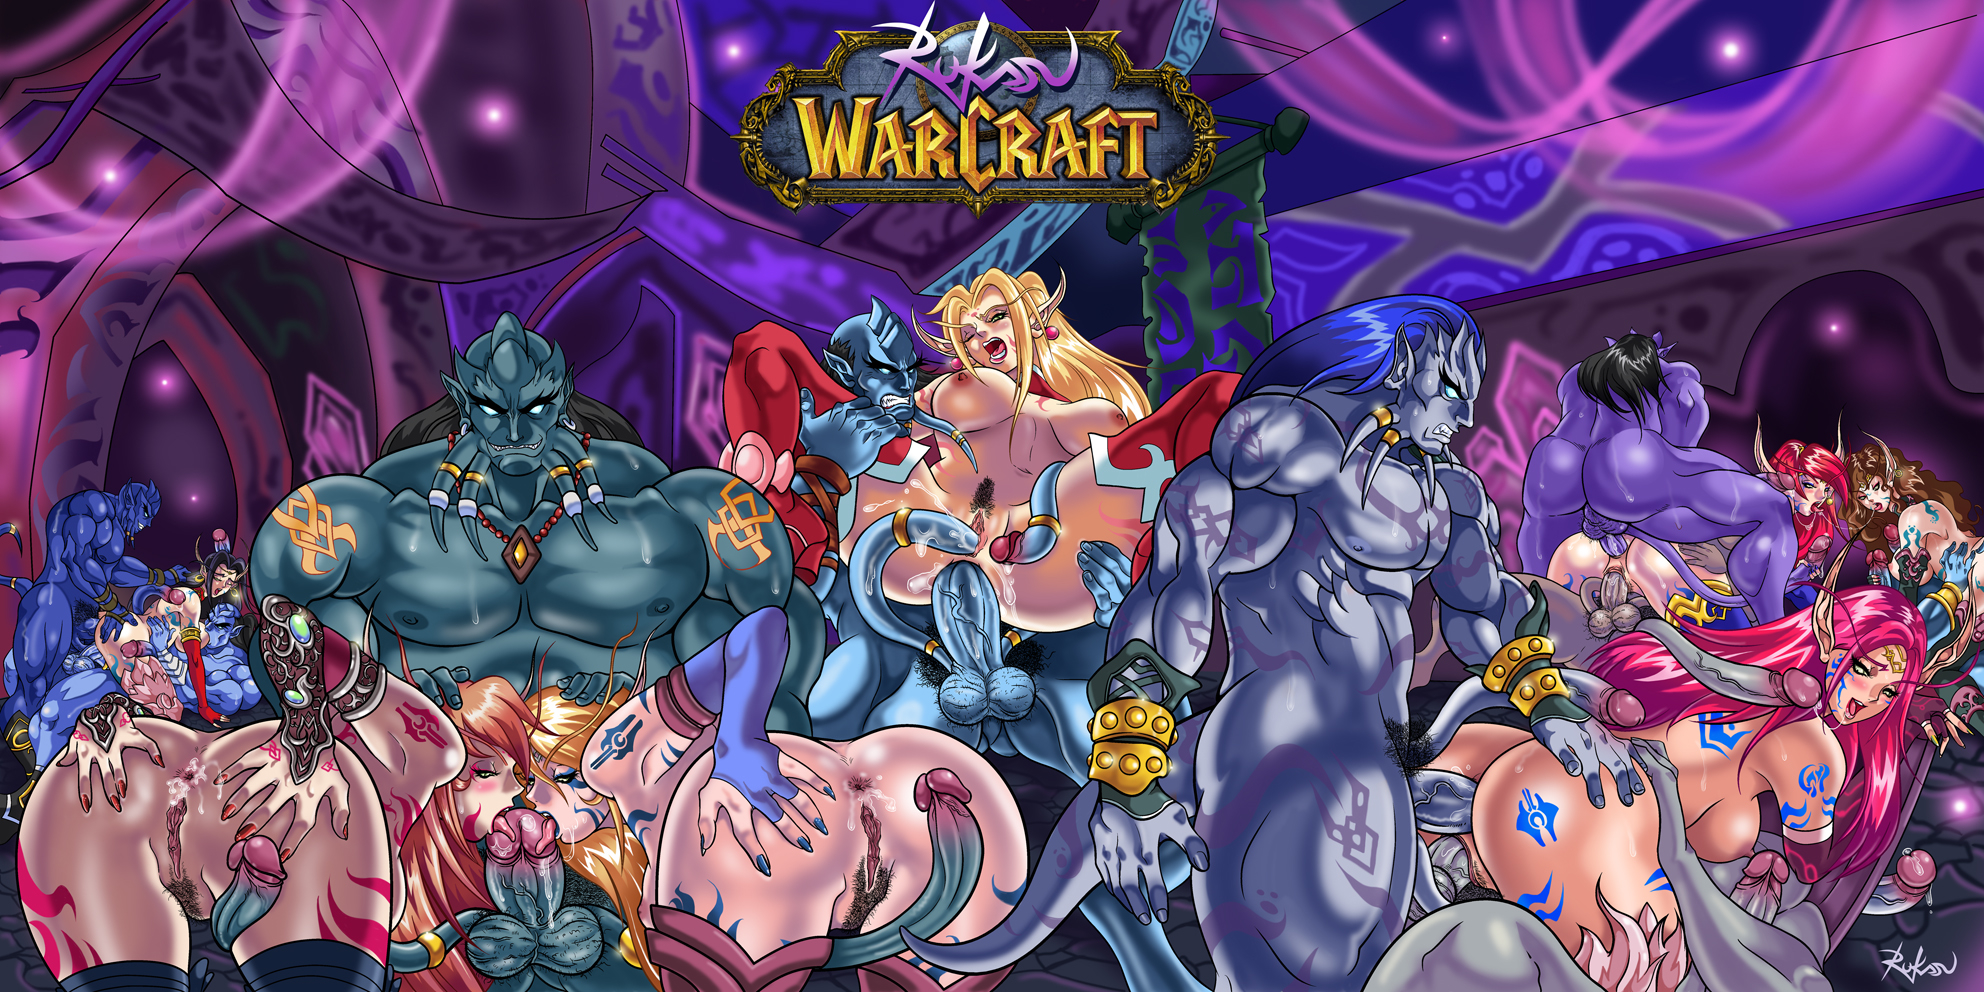 World of warcraft sex story sexual picture